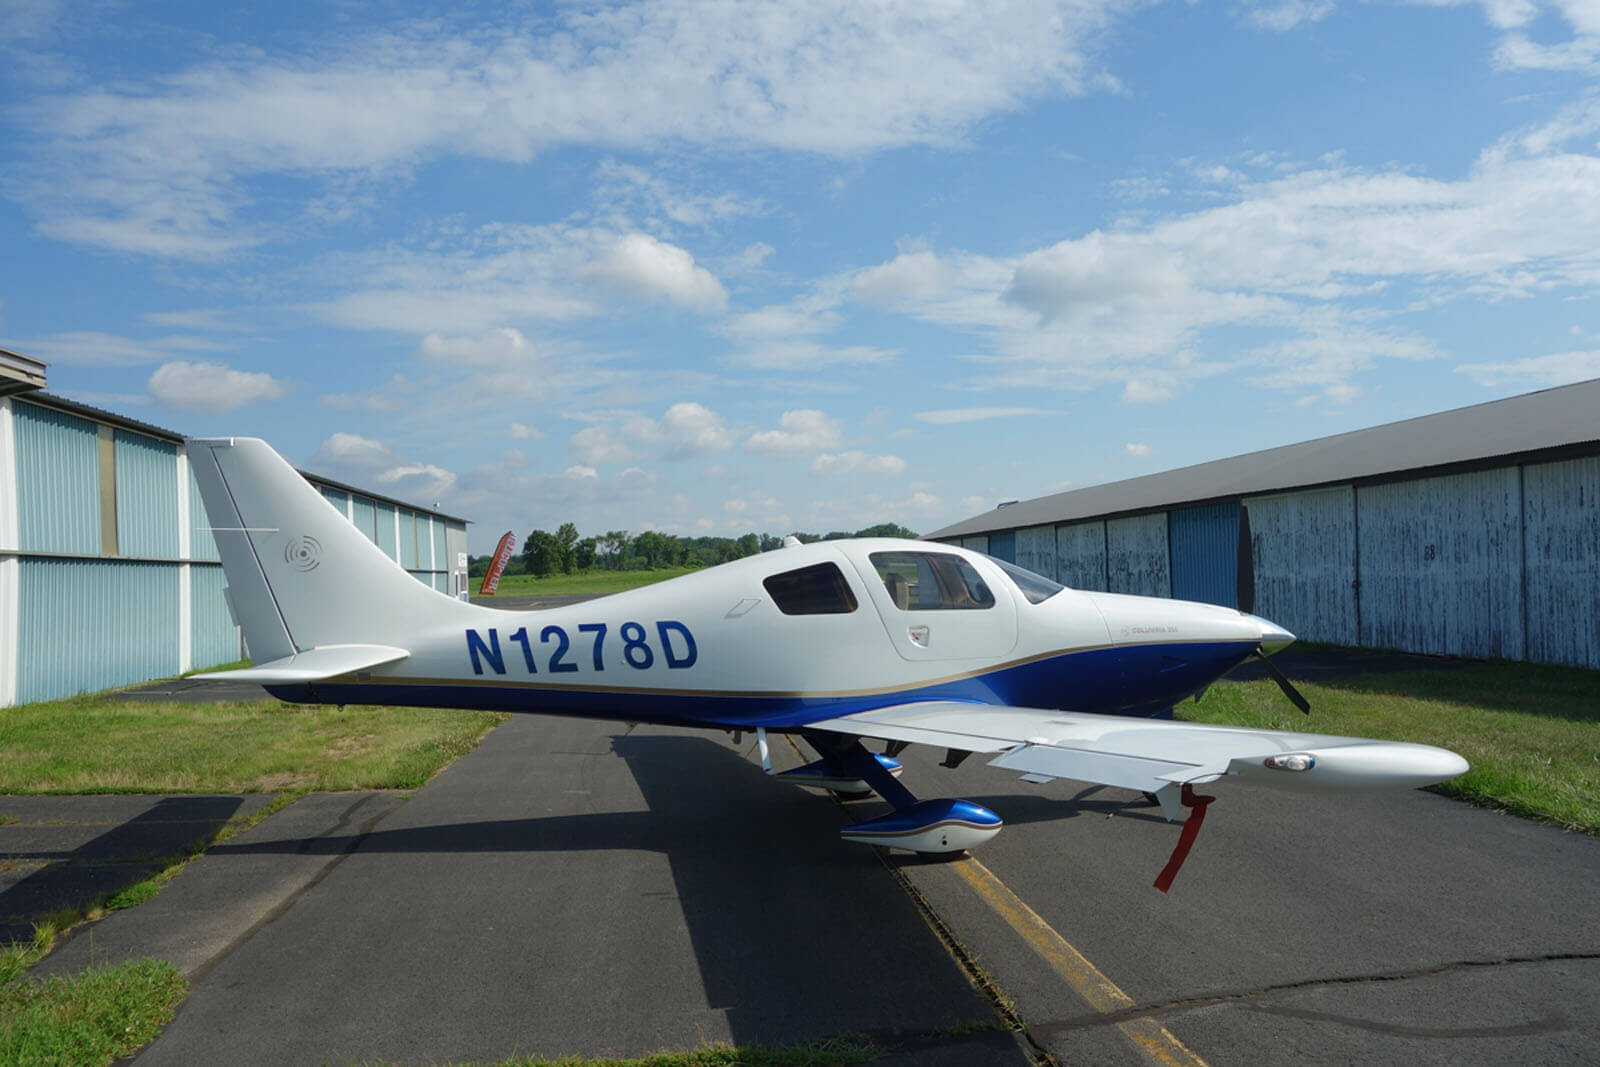 2006 Columbia 350 – FOR SALE at Princeton Airport - Contact Ken Nierenberg at 609-731-4628 for details